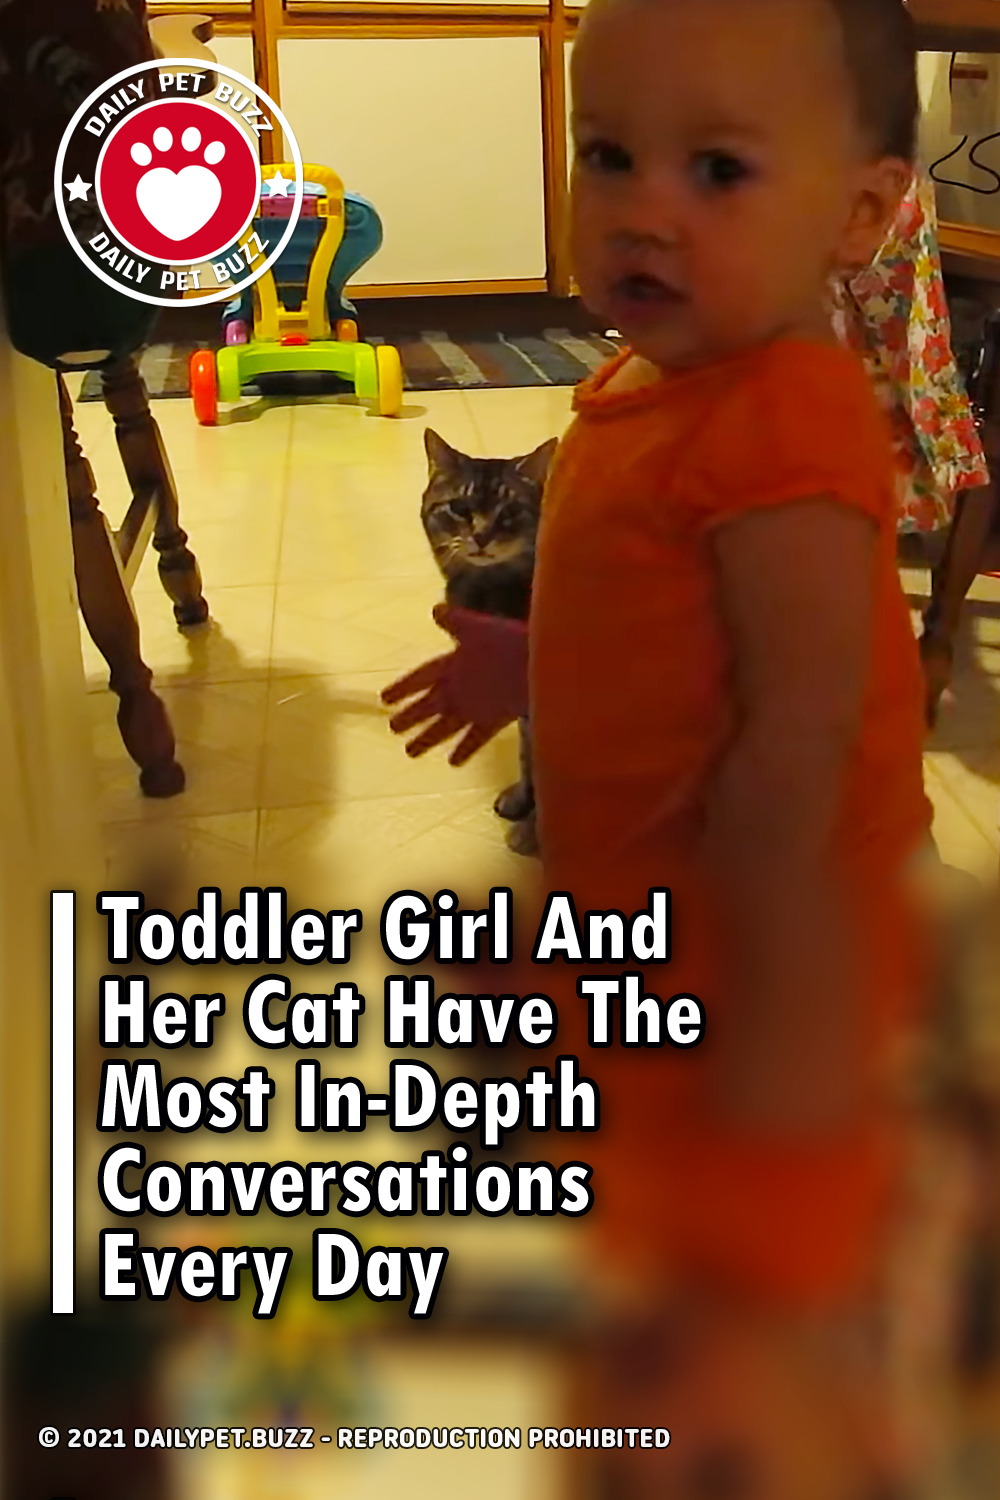 Toddler Girl And Her Cat Have The Most In-Depth Conversations Every Day